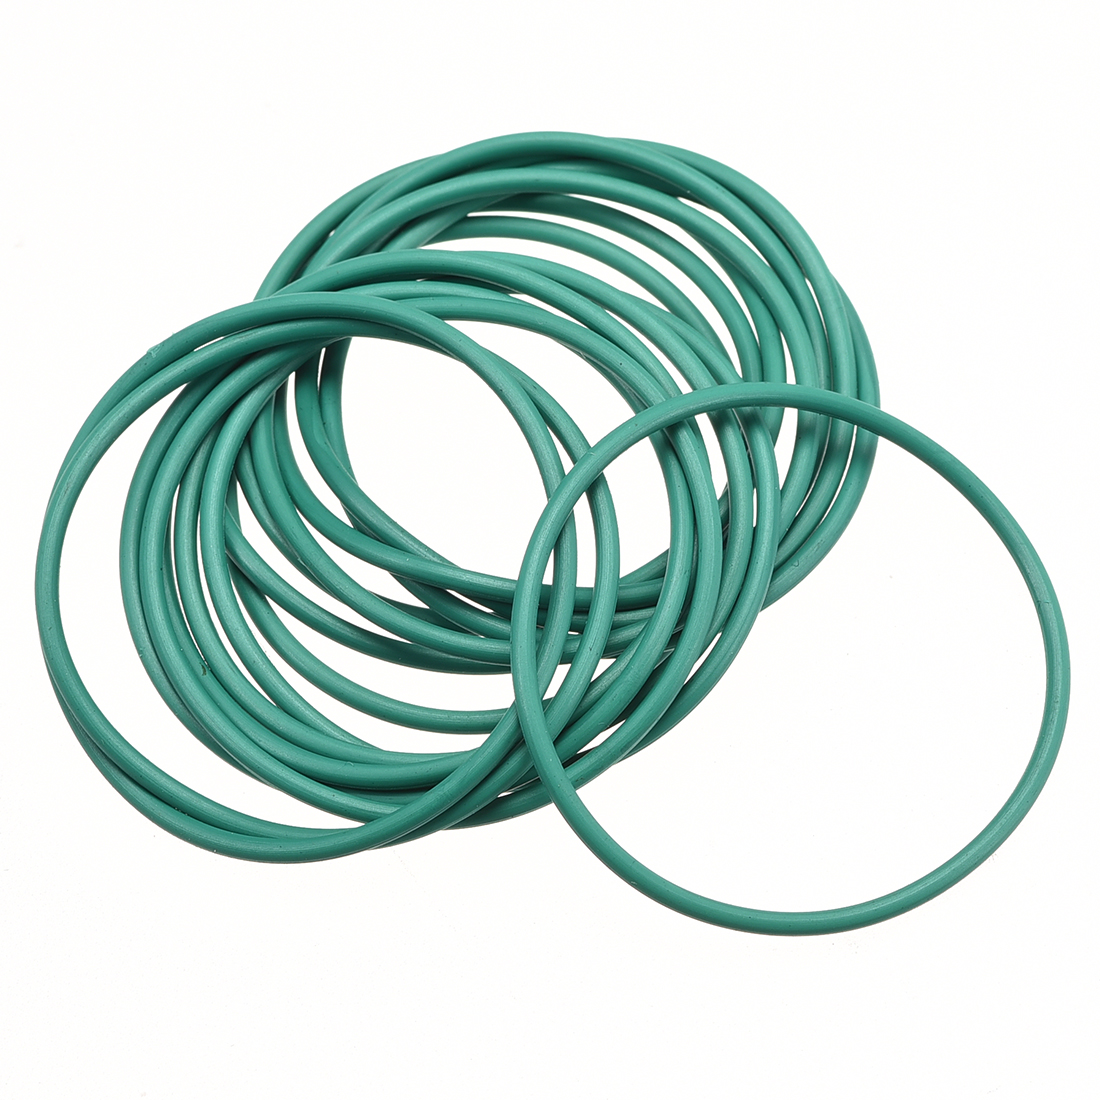 15pcs Green 31mm Outer Dia 1.5mm Thickness Sealing Ring O-shape Rubber Grommet